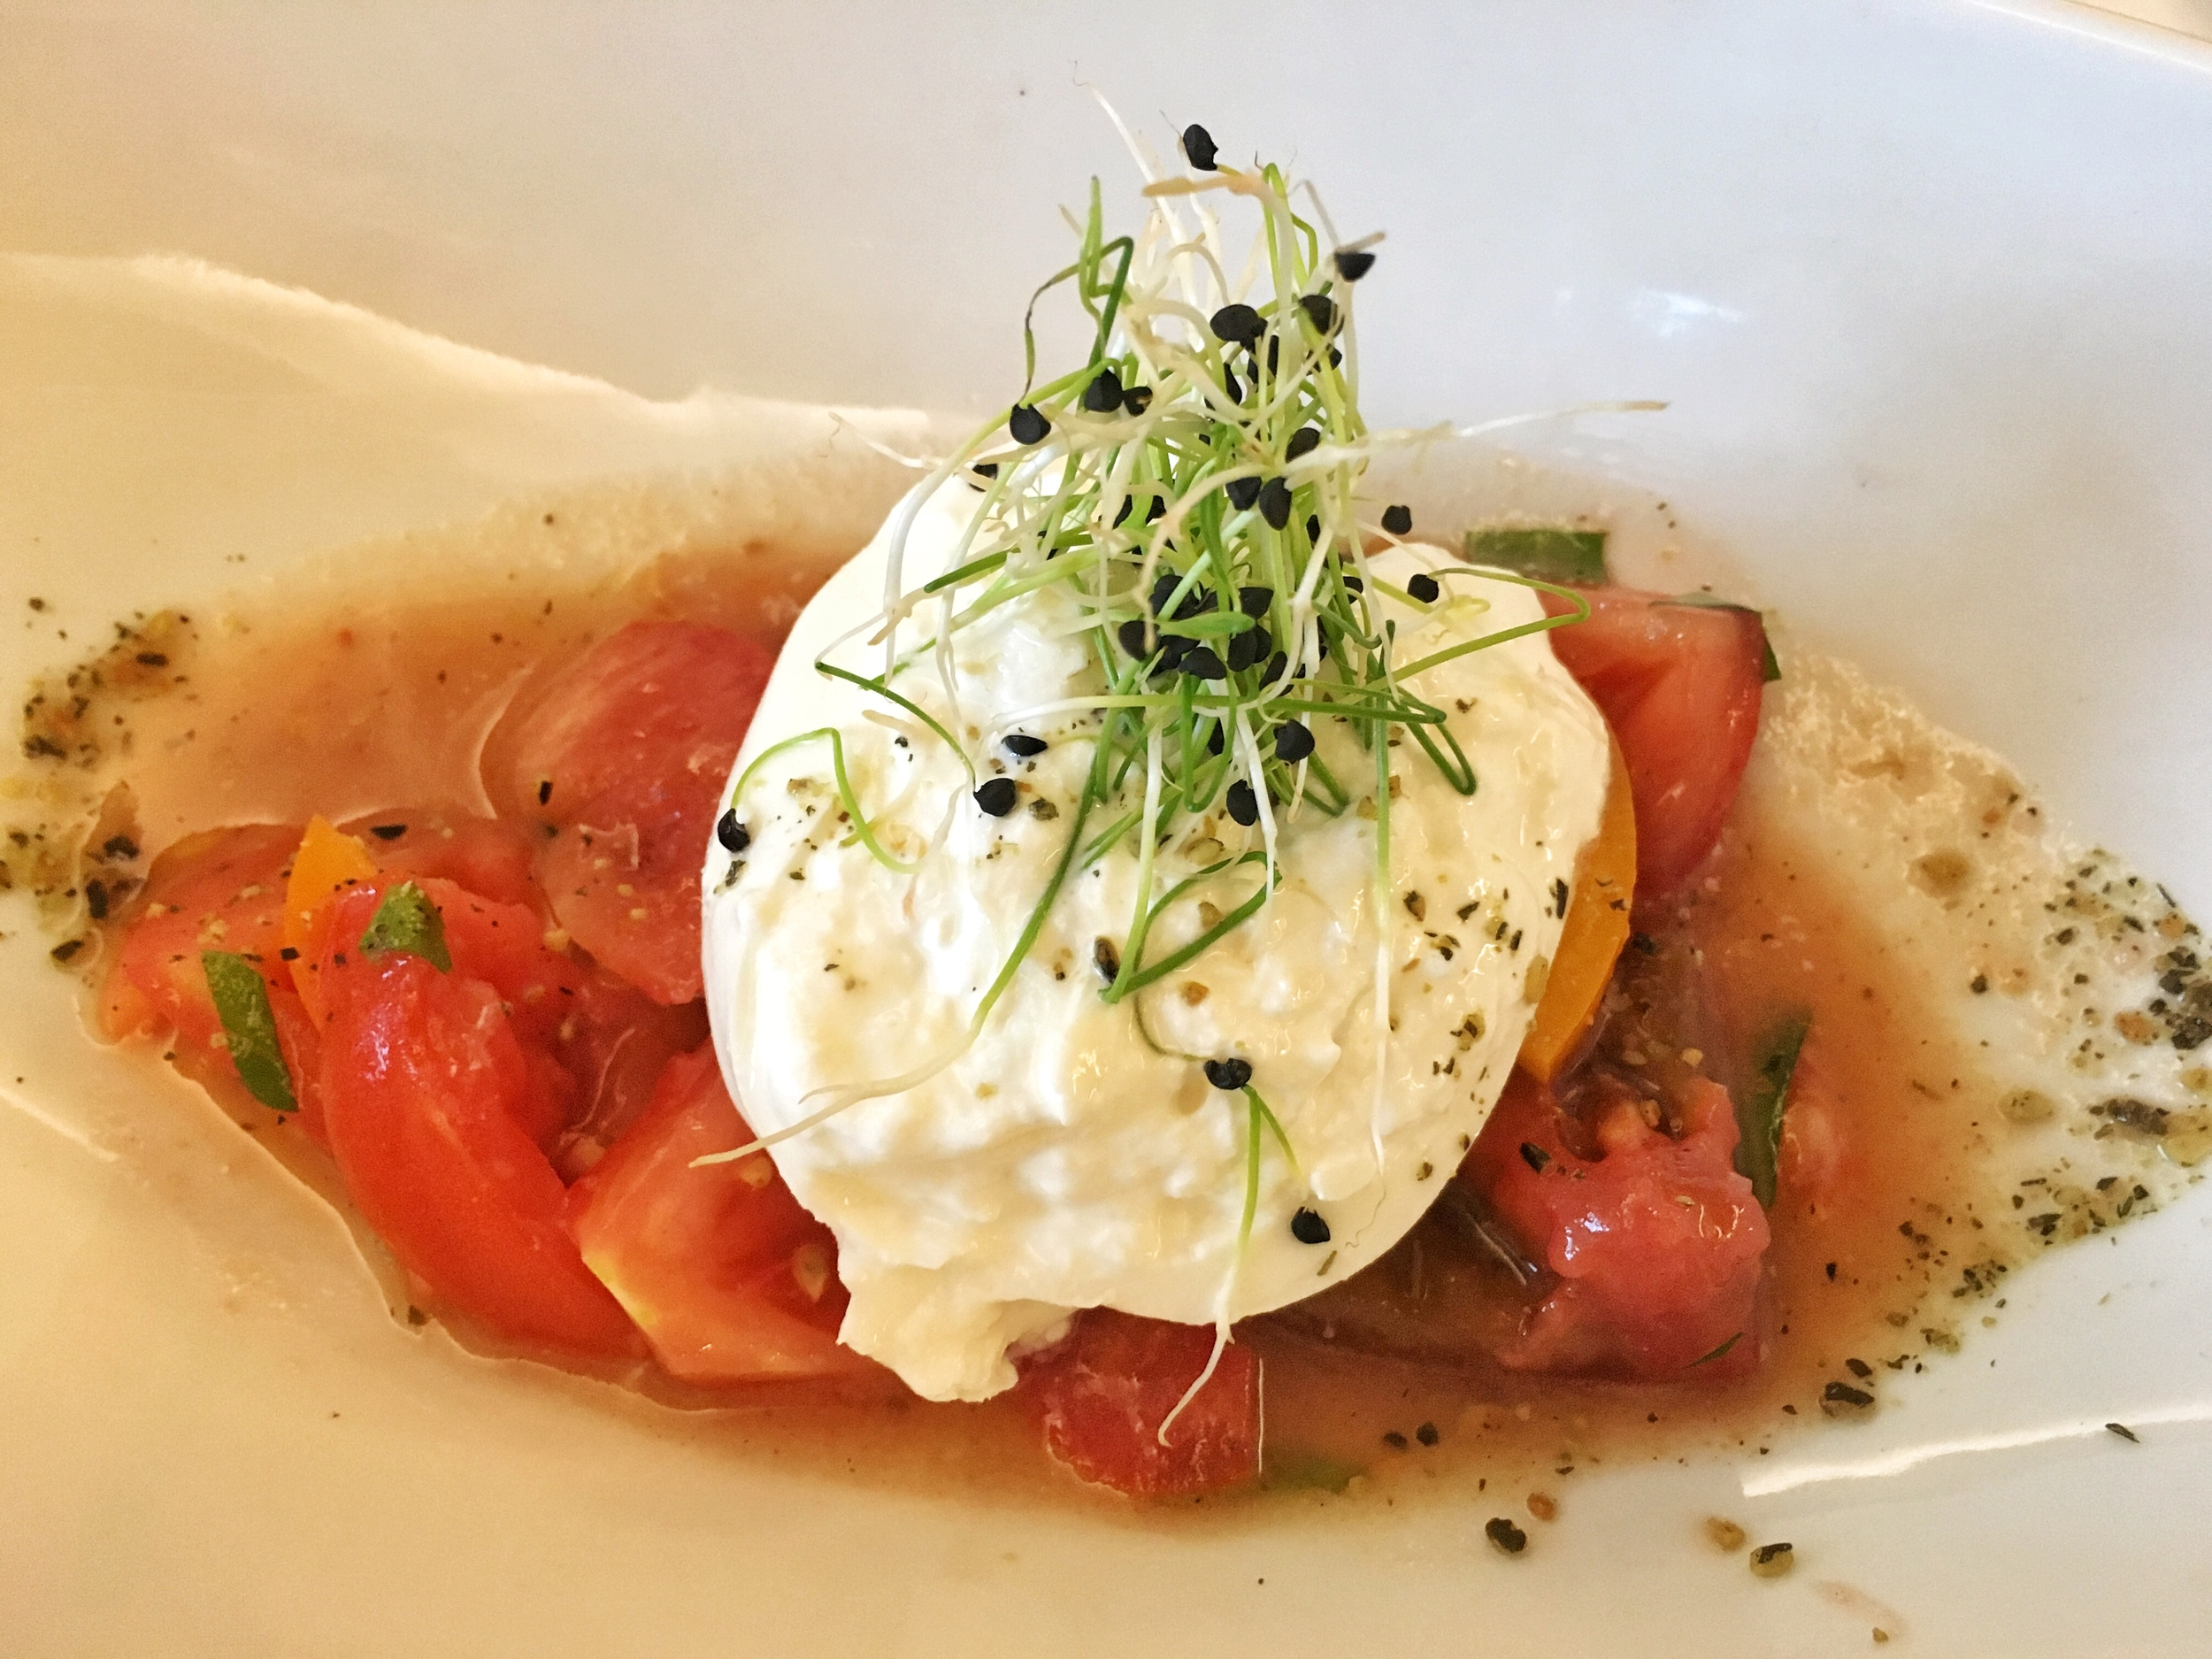 Special appetizer of the day- burrata, salsa verde, heirloom tomatoes, cilantro.